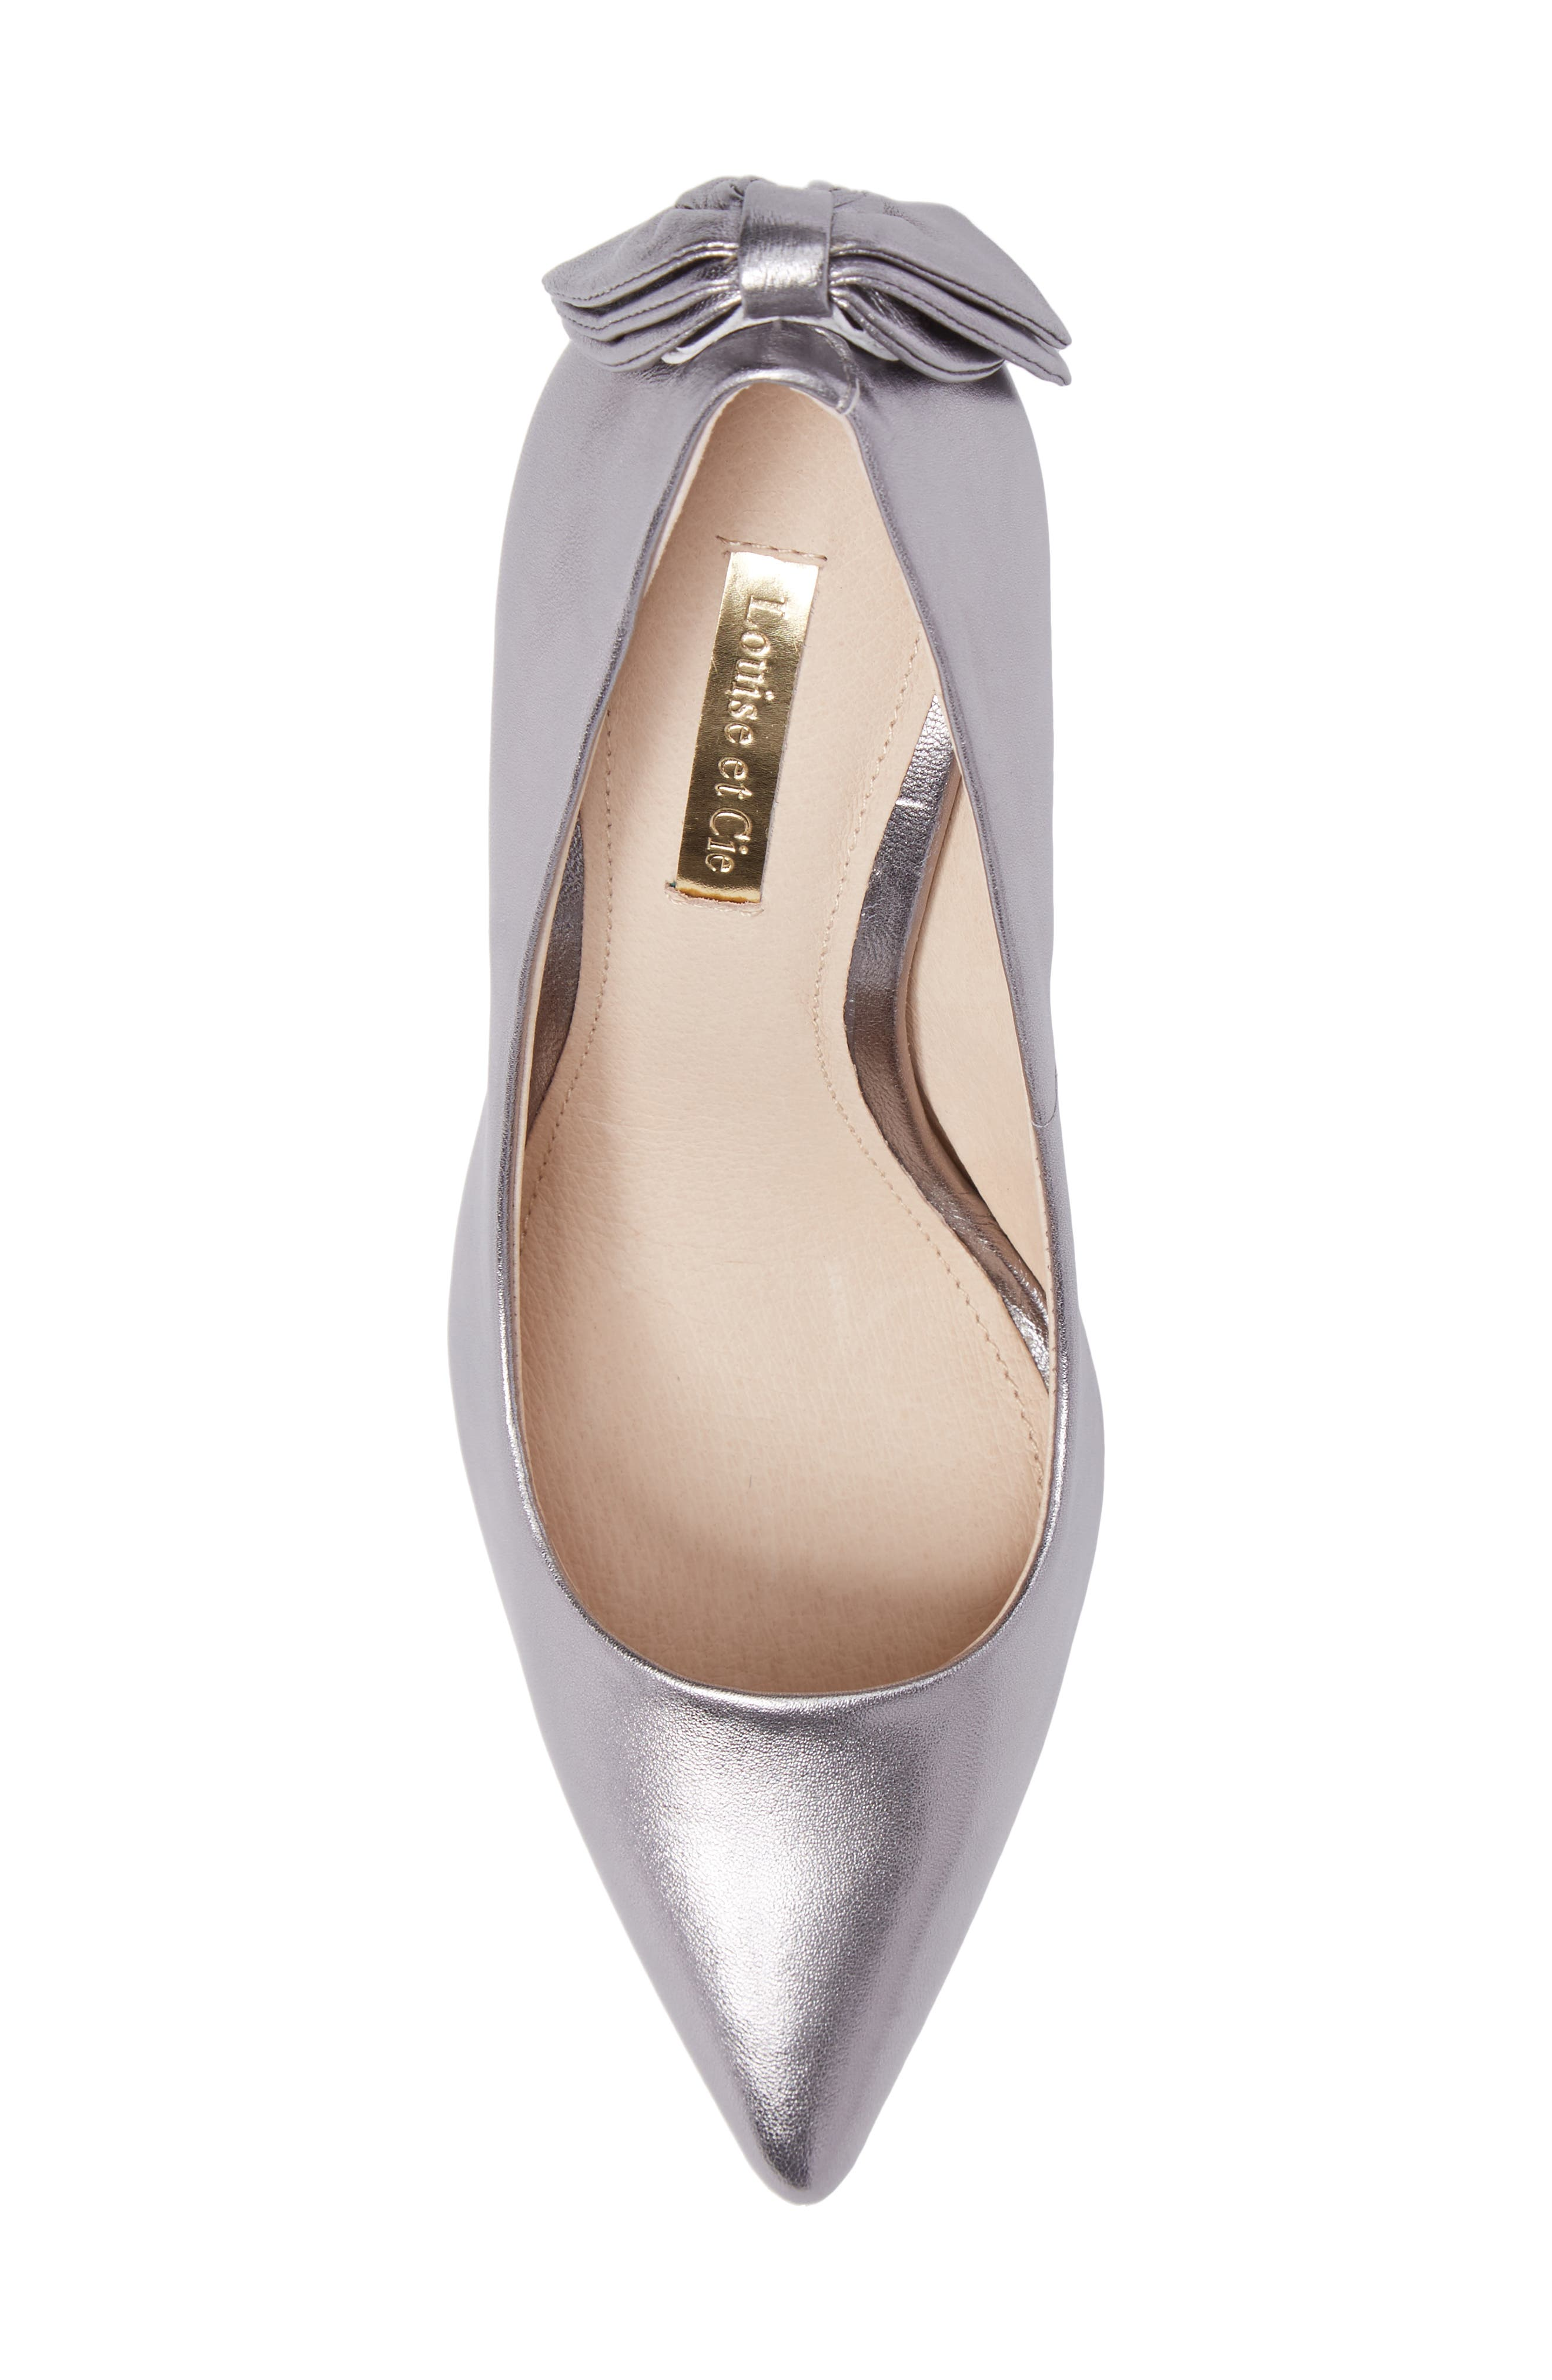 Josely Pointy Toe Pump,                             Alternate thumbnail 5, color,                             Chrome Leather